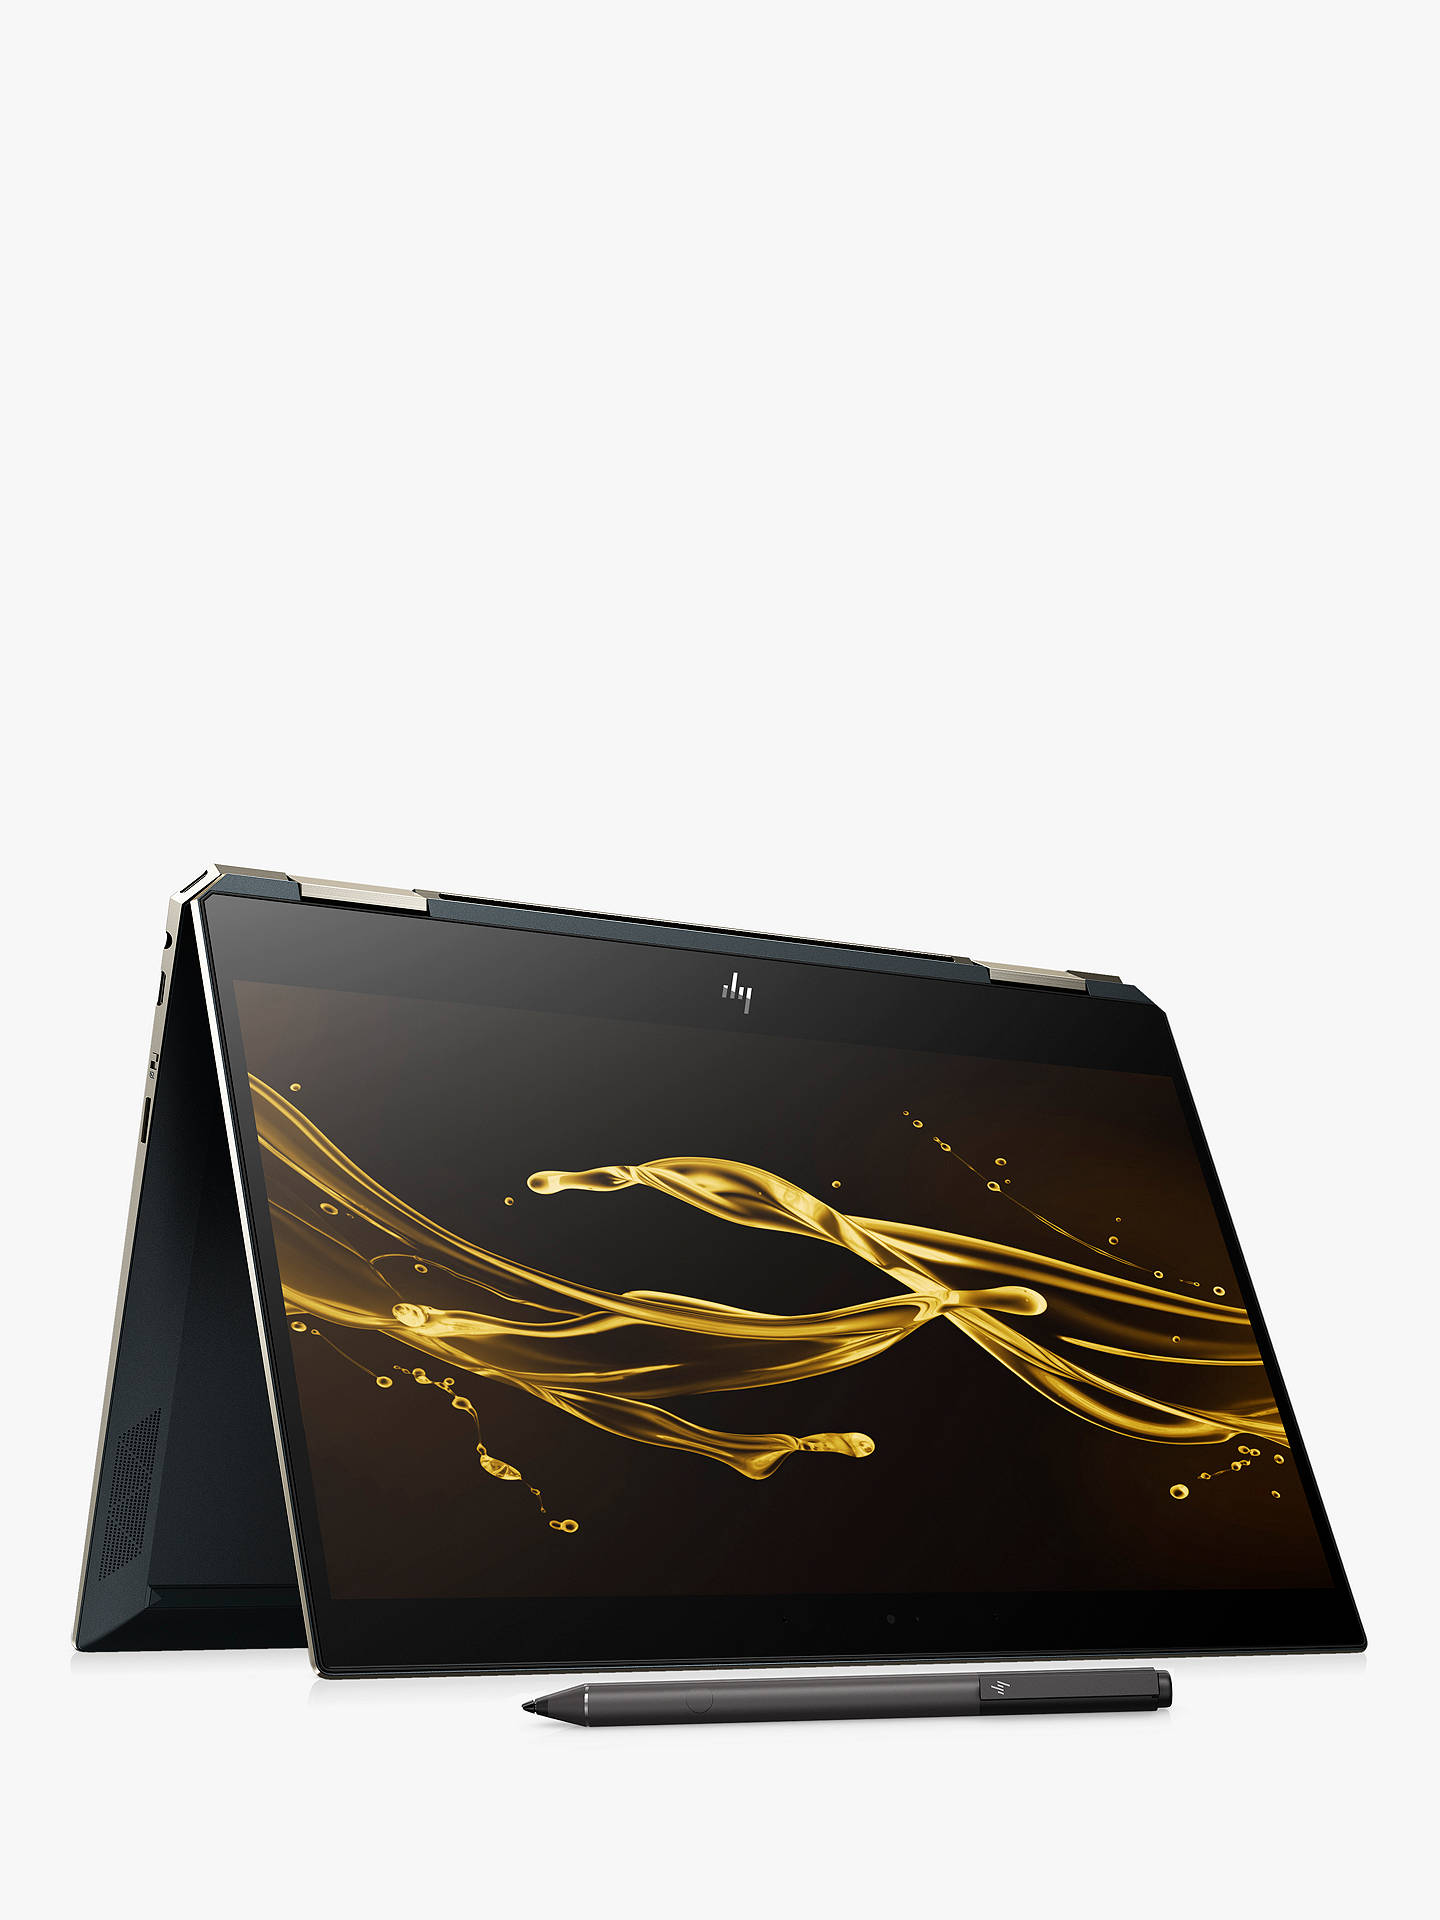 4d63c432a HP Spectre x360 13-ap0007na Convertible Laptop with HP Tilt Pen Stylus,  Intel Core i7, 8GB RAM, 512GB SSD, 13.3